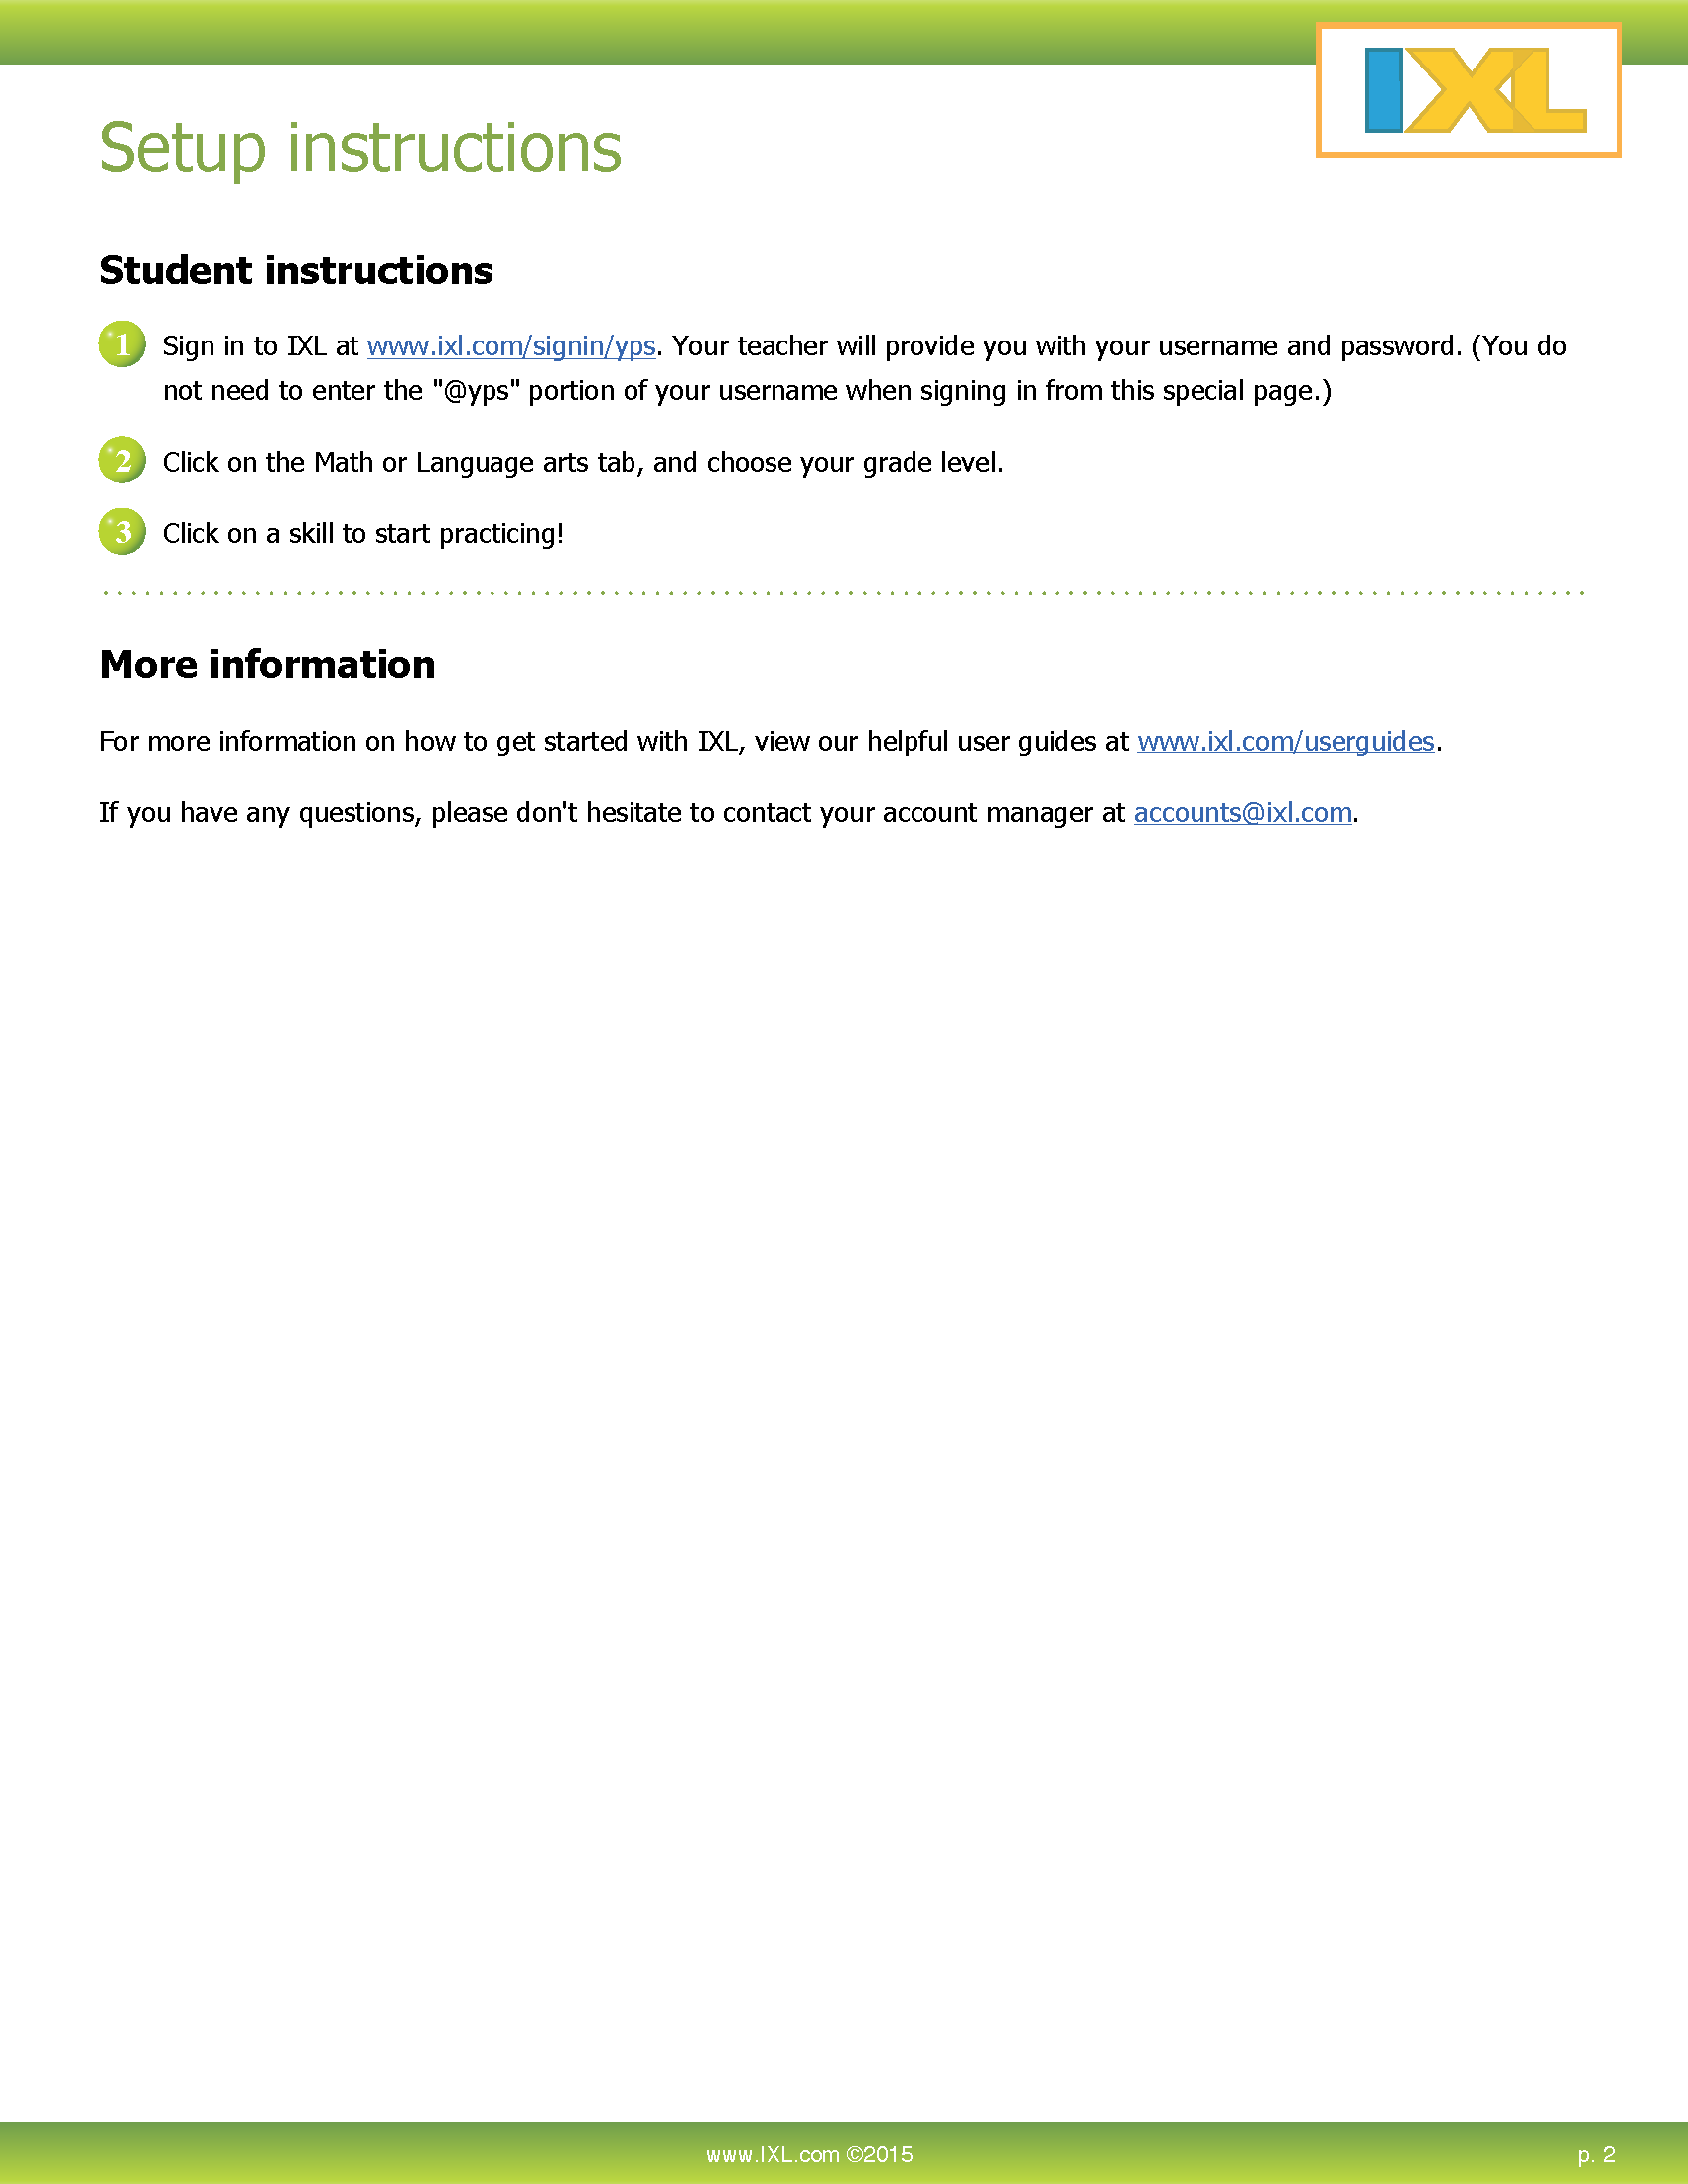 iXL Math - Teacher Account Activation | Yukon Public Schools Help Center